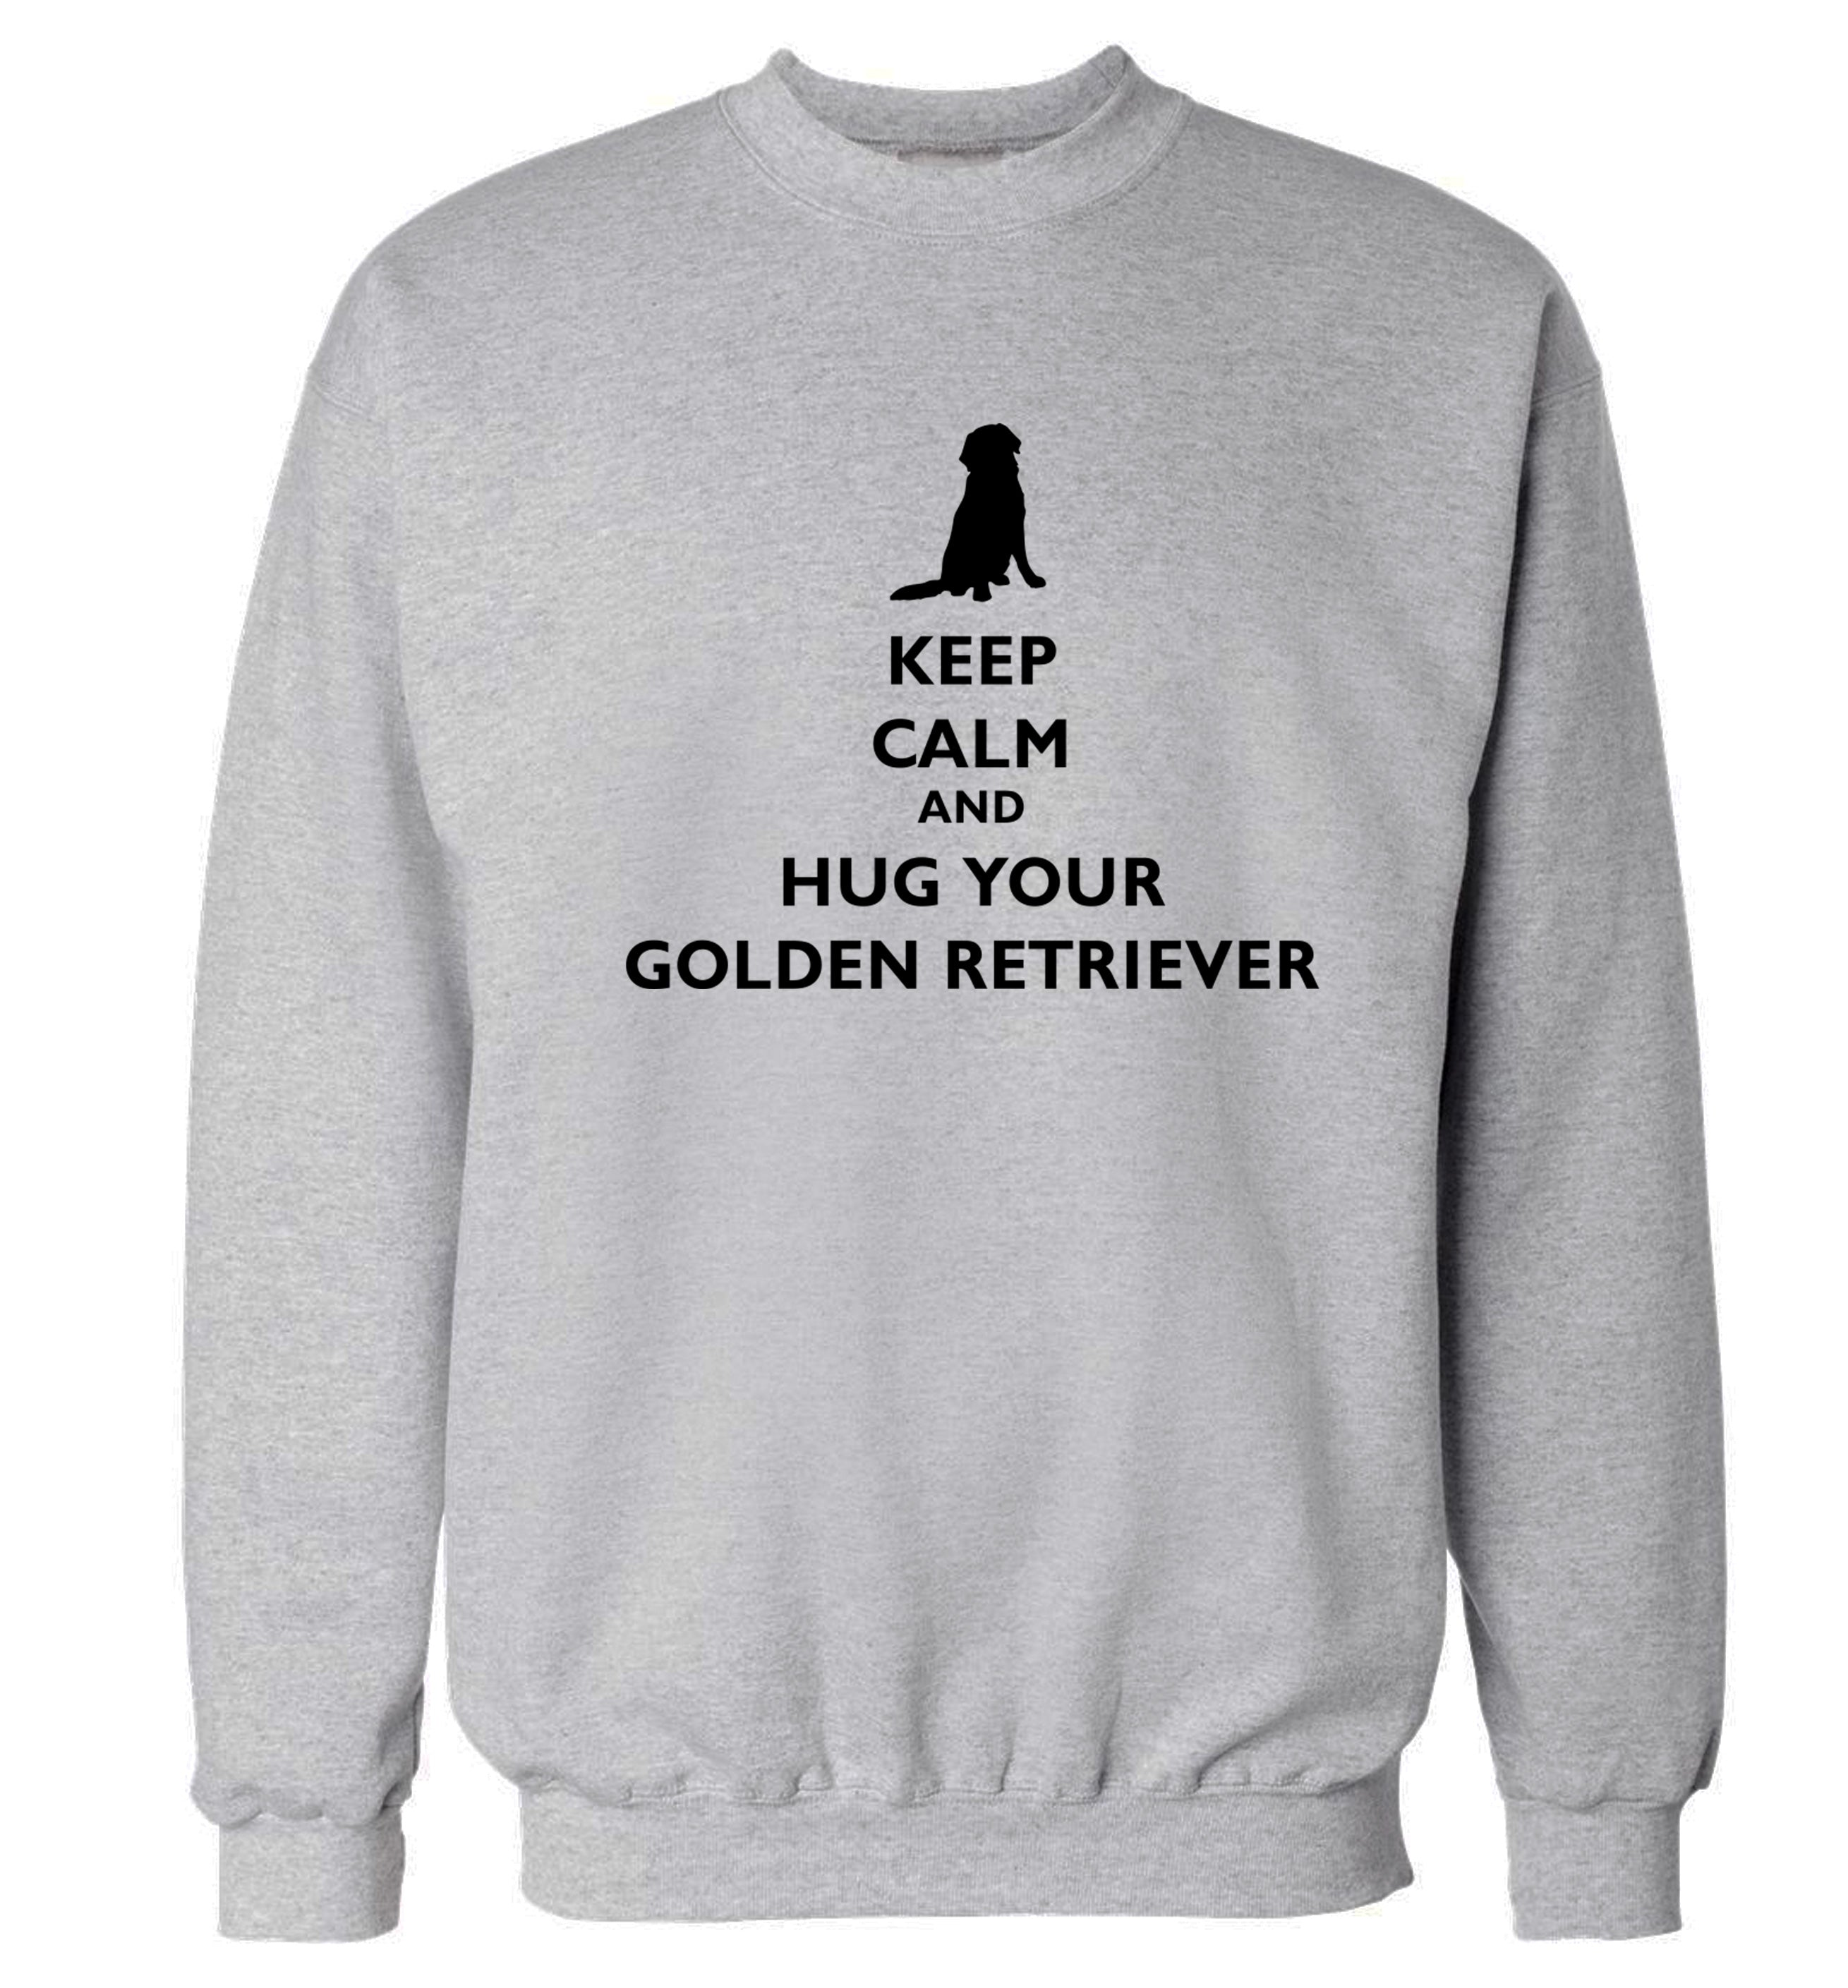 Keep calm and hug your golden retriever Adult's unisex grey Sweater 2XL